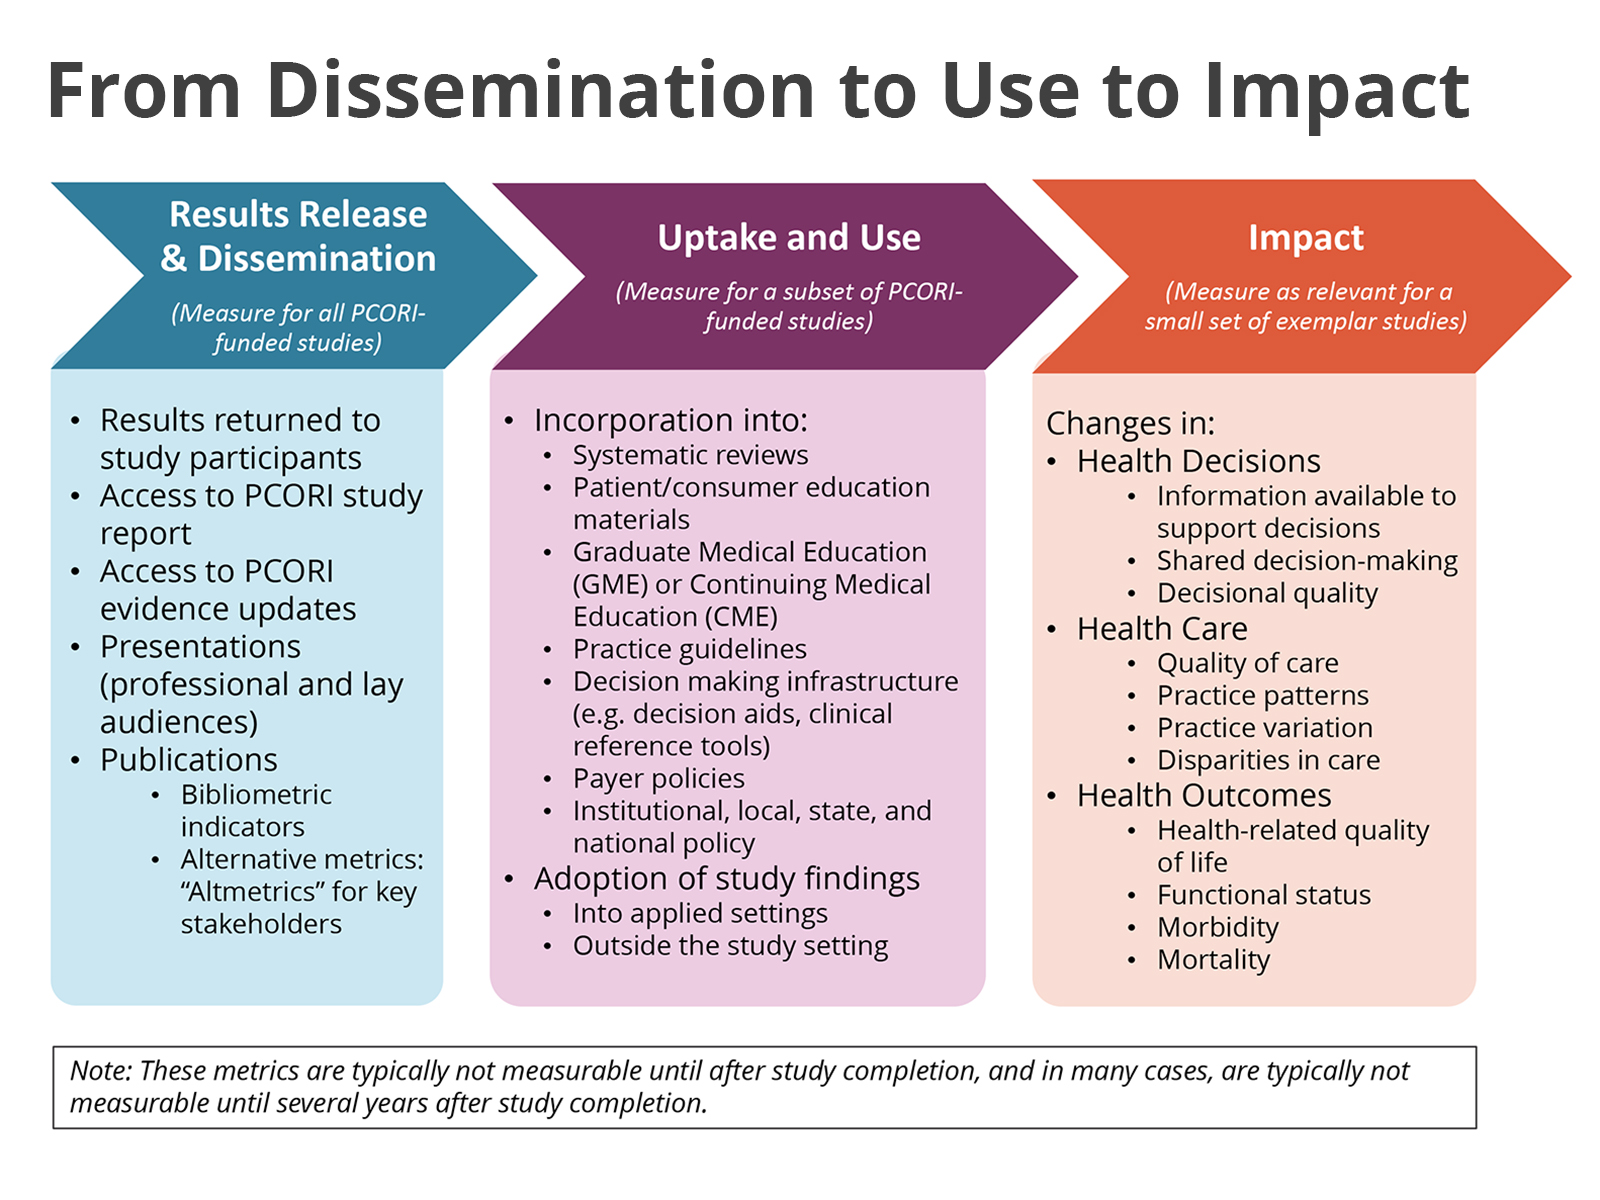 From Dissemination to Use to Impact - Results Release & Dissemination (measure for all PCORI-funded studies) - Uptake and Use (measure for a subset of PCORI-funded studies) - Impact (measure as a relevant for a small set of exemplar studies) Note: